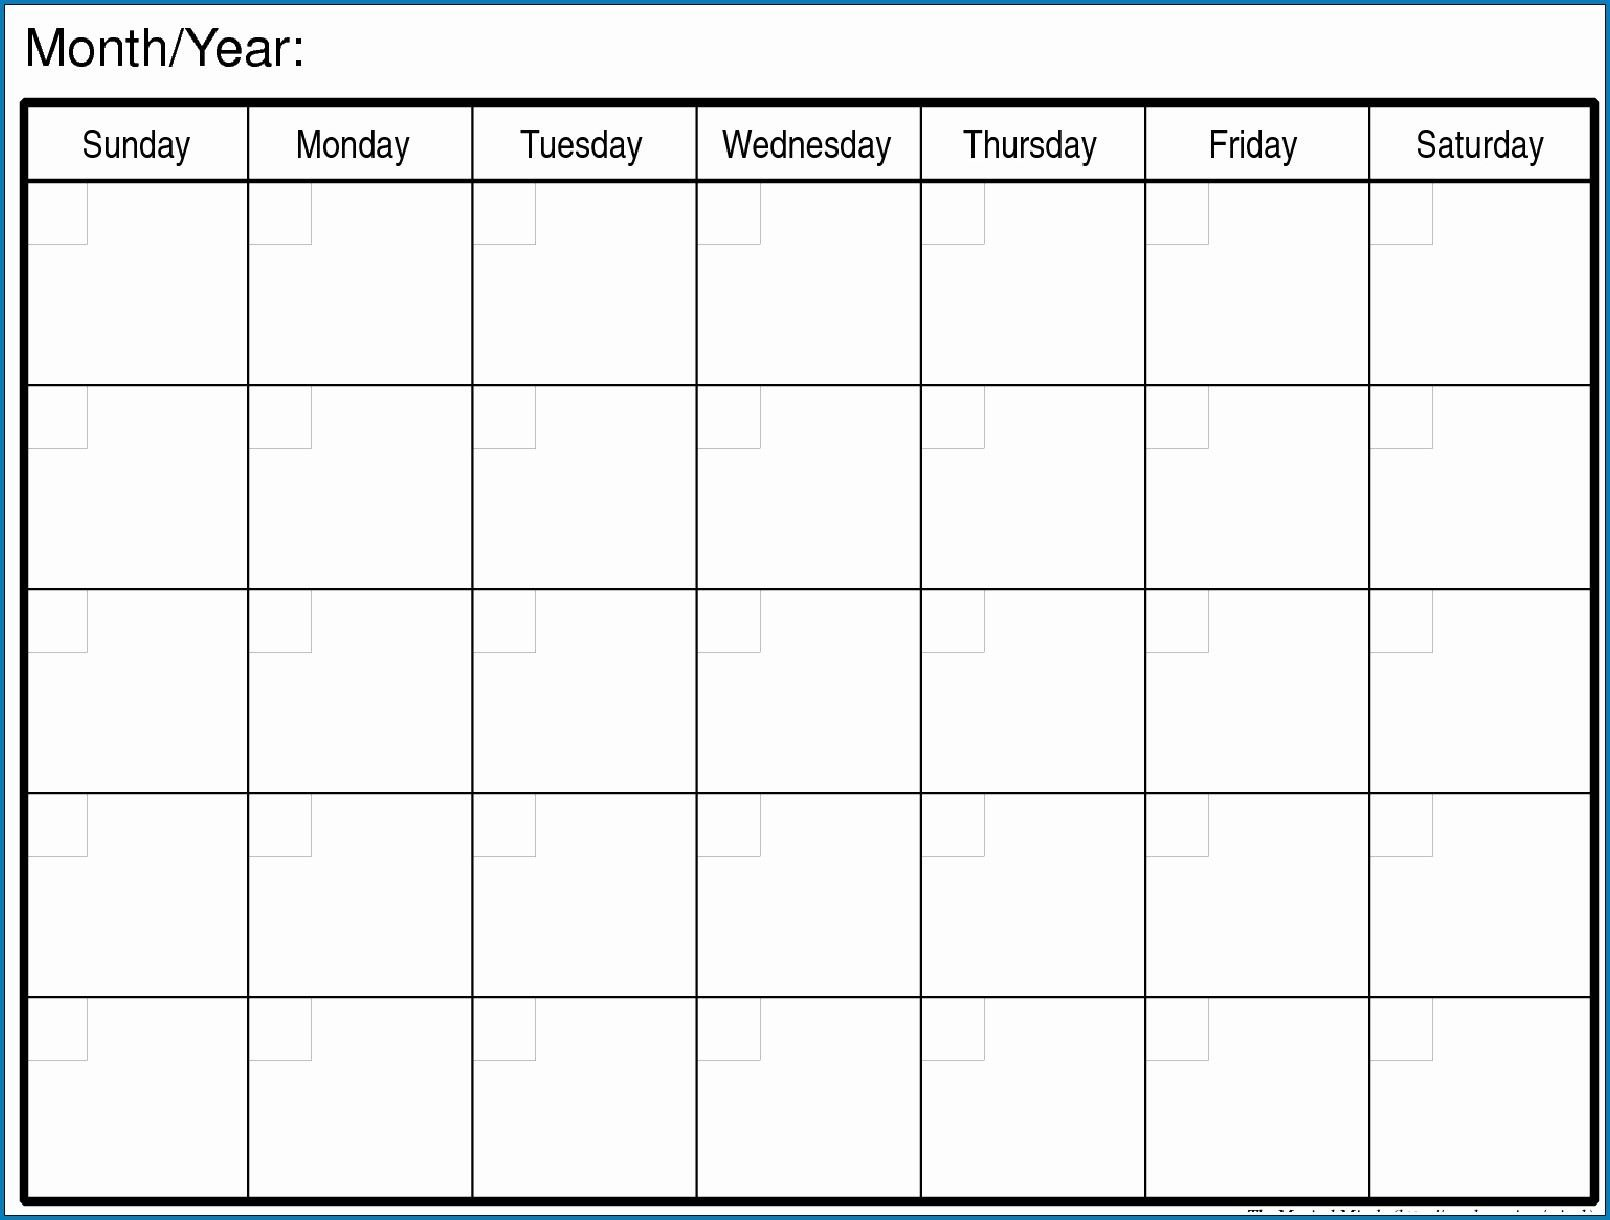 How To Printable Monday Through Friday Monthly Calendar Free Printable Calendars By Month Monday Through Sunday